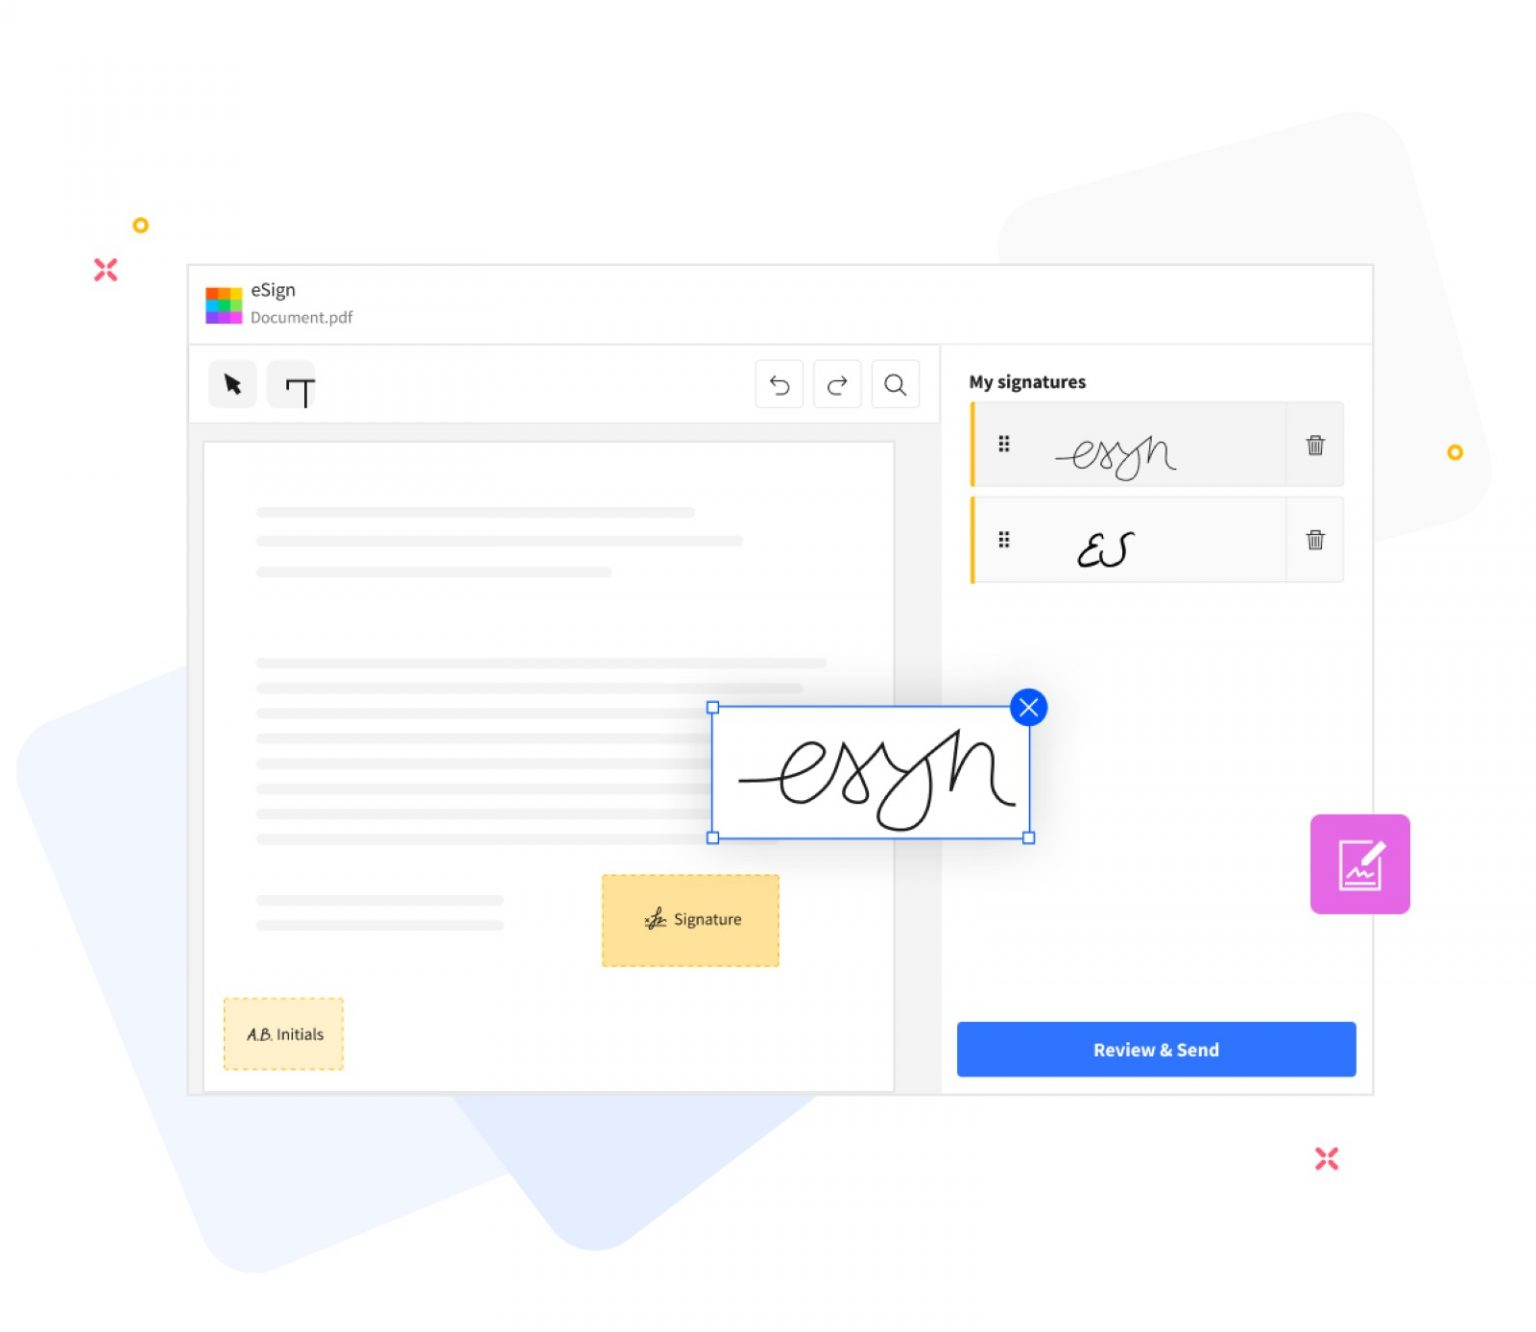 Smallpdf's eSign PDF tool helps you sign and save documents.